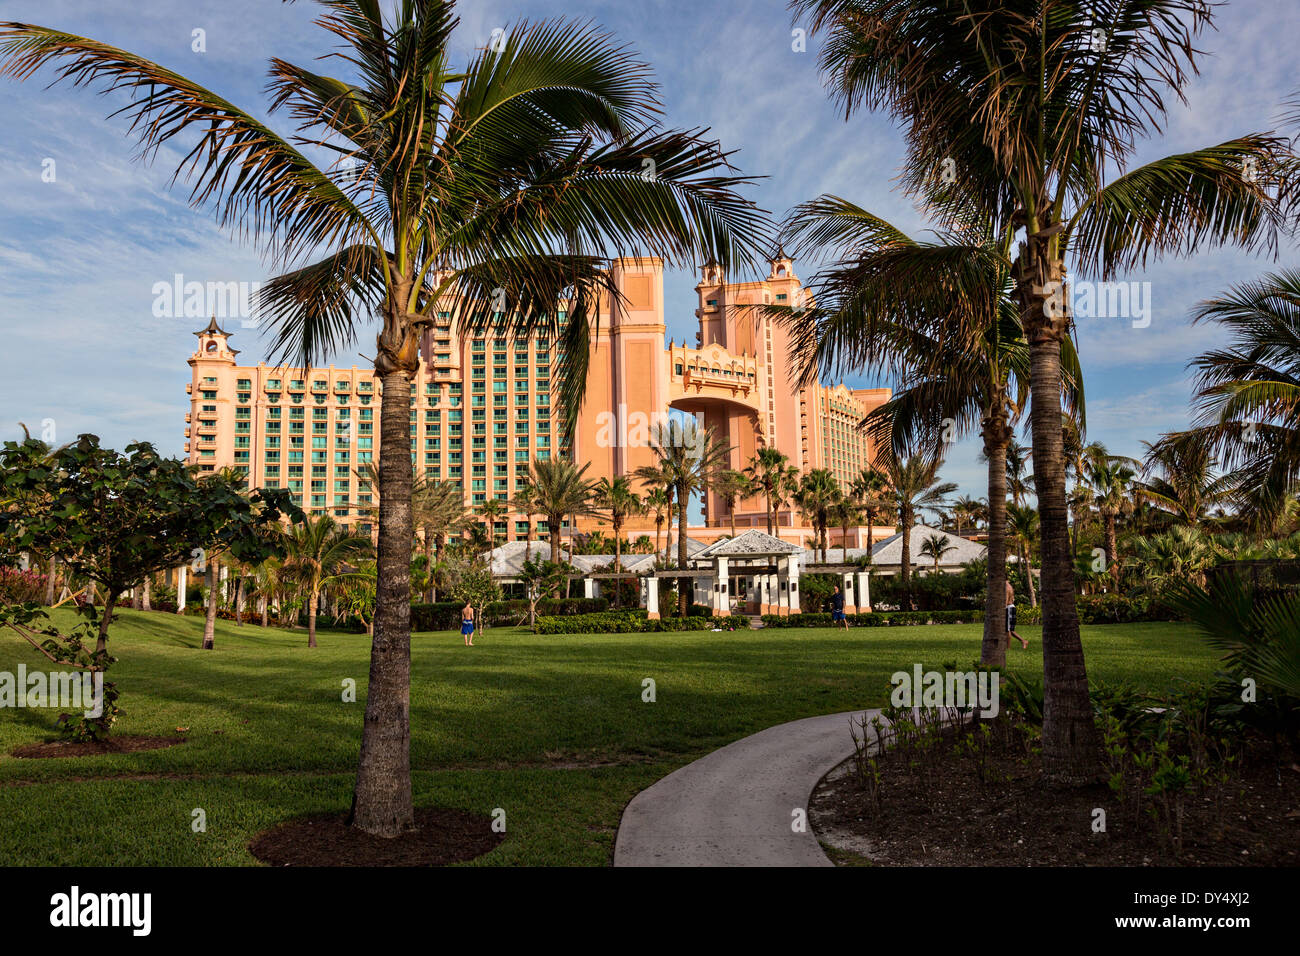 new casino resort in nassau bahamas